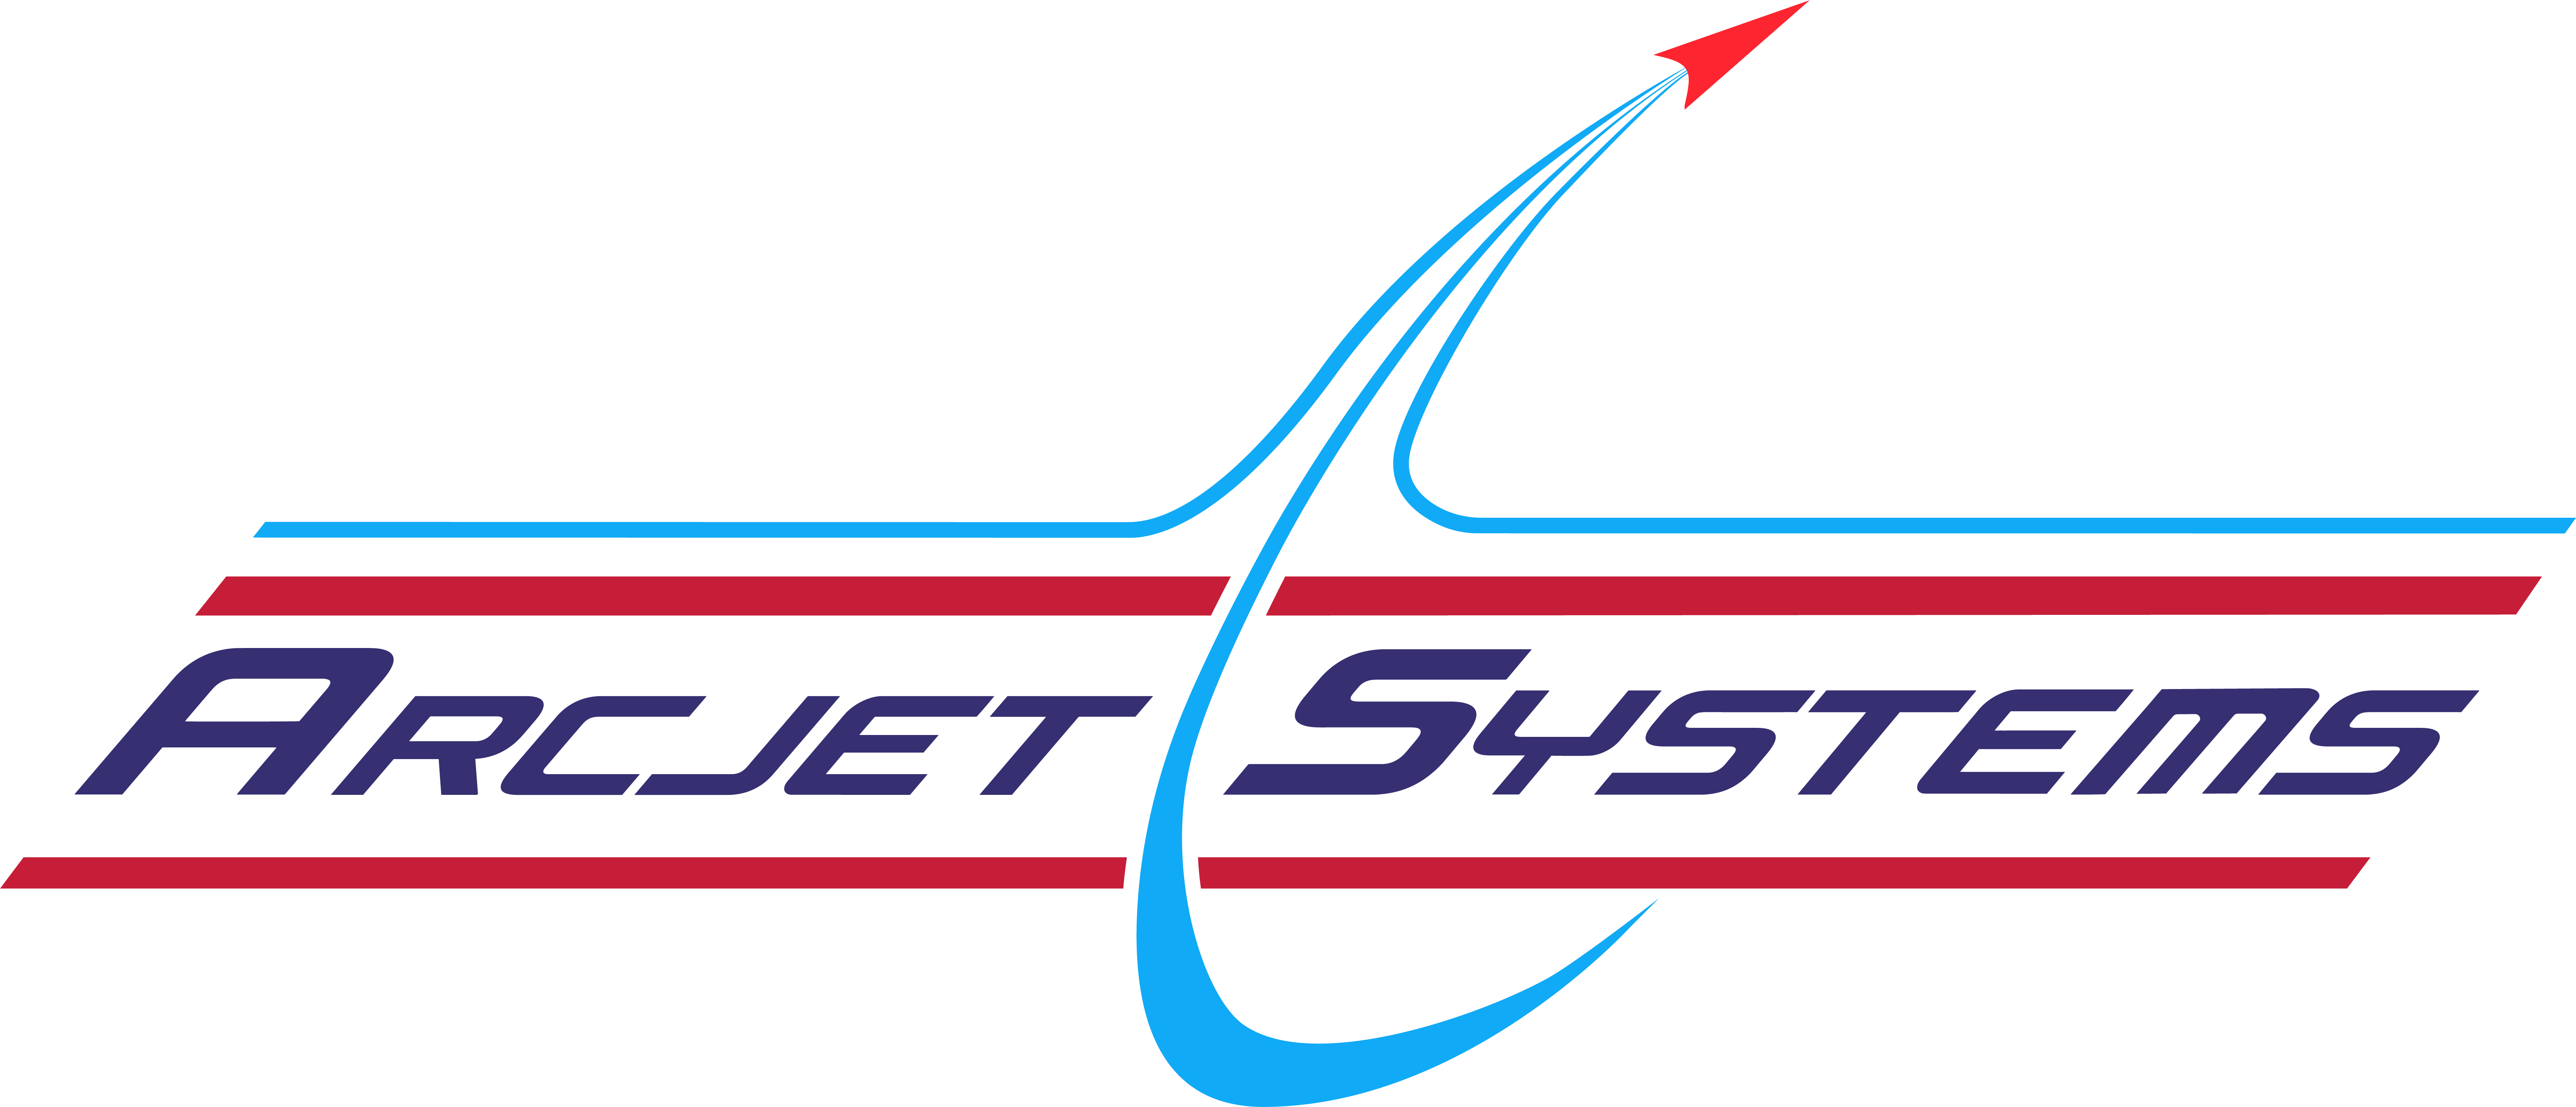 File:ArcJet Systems logo.png